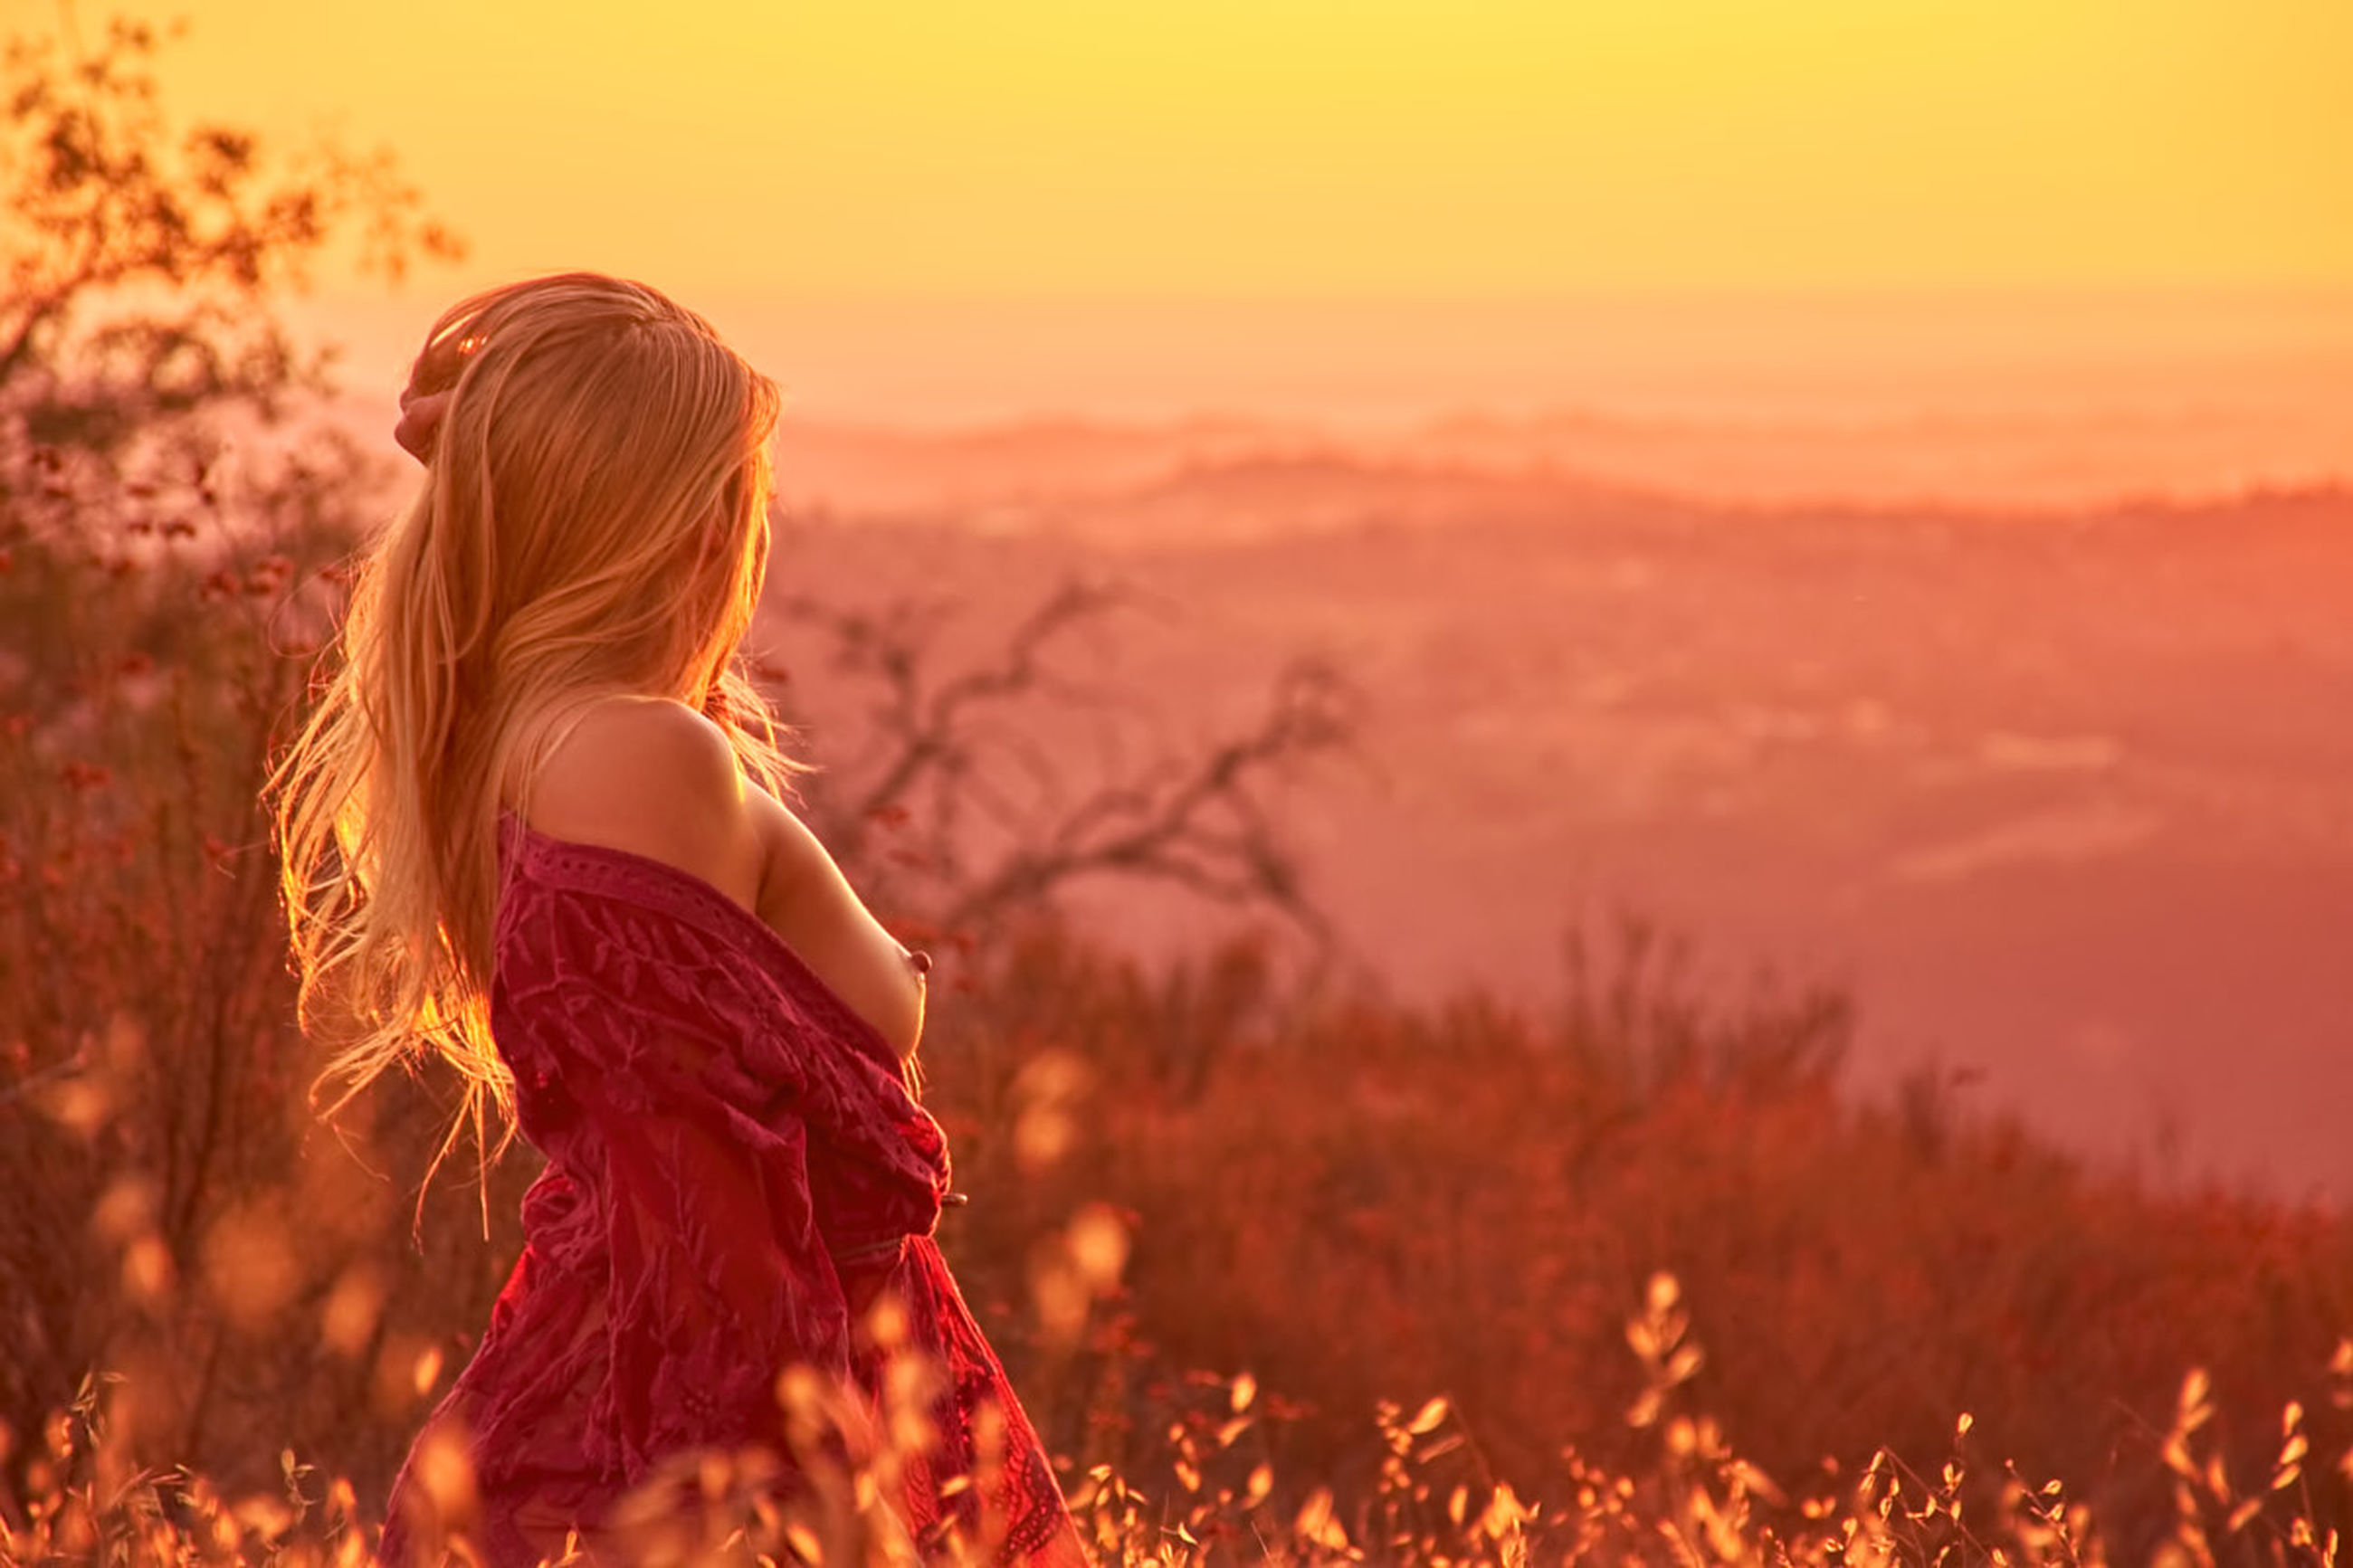 sunset, one person, real people, sky, leisure activity, lifestyles, orange color, land, women, beauty in nature, nature, hairstyle, three quarter length, hair, field, side view, long hair, adult, casual clothing, outdoors